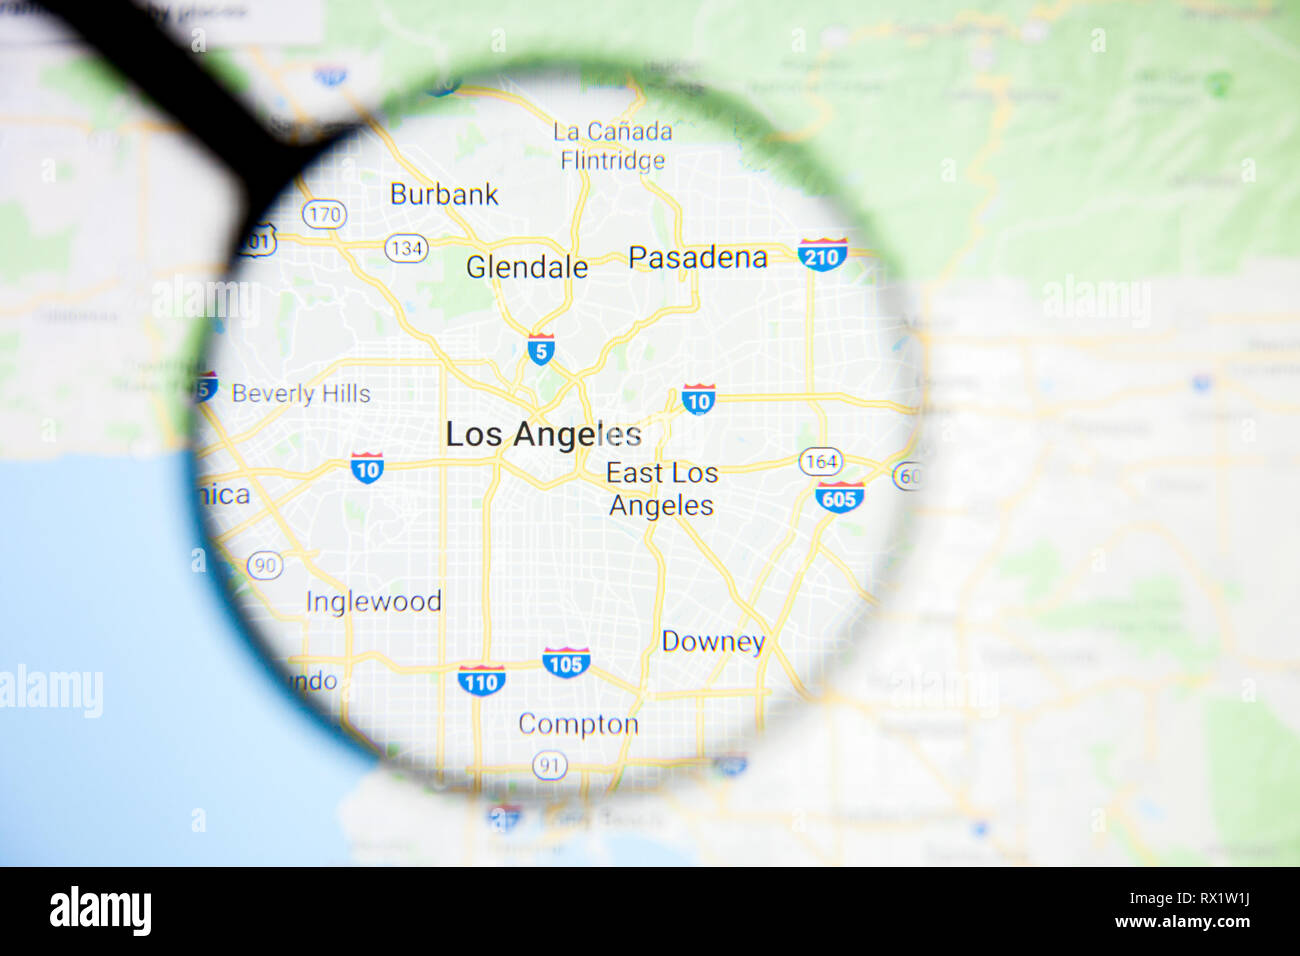 Los Angeles city visualization illustrative concept on display screen through magnifying glass - Stock Image